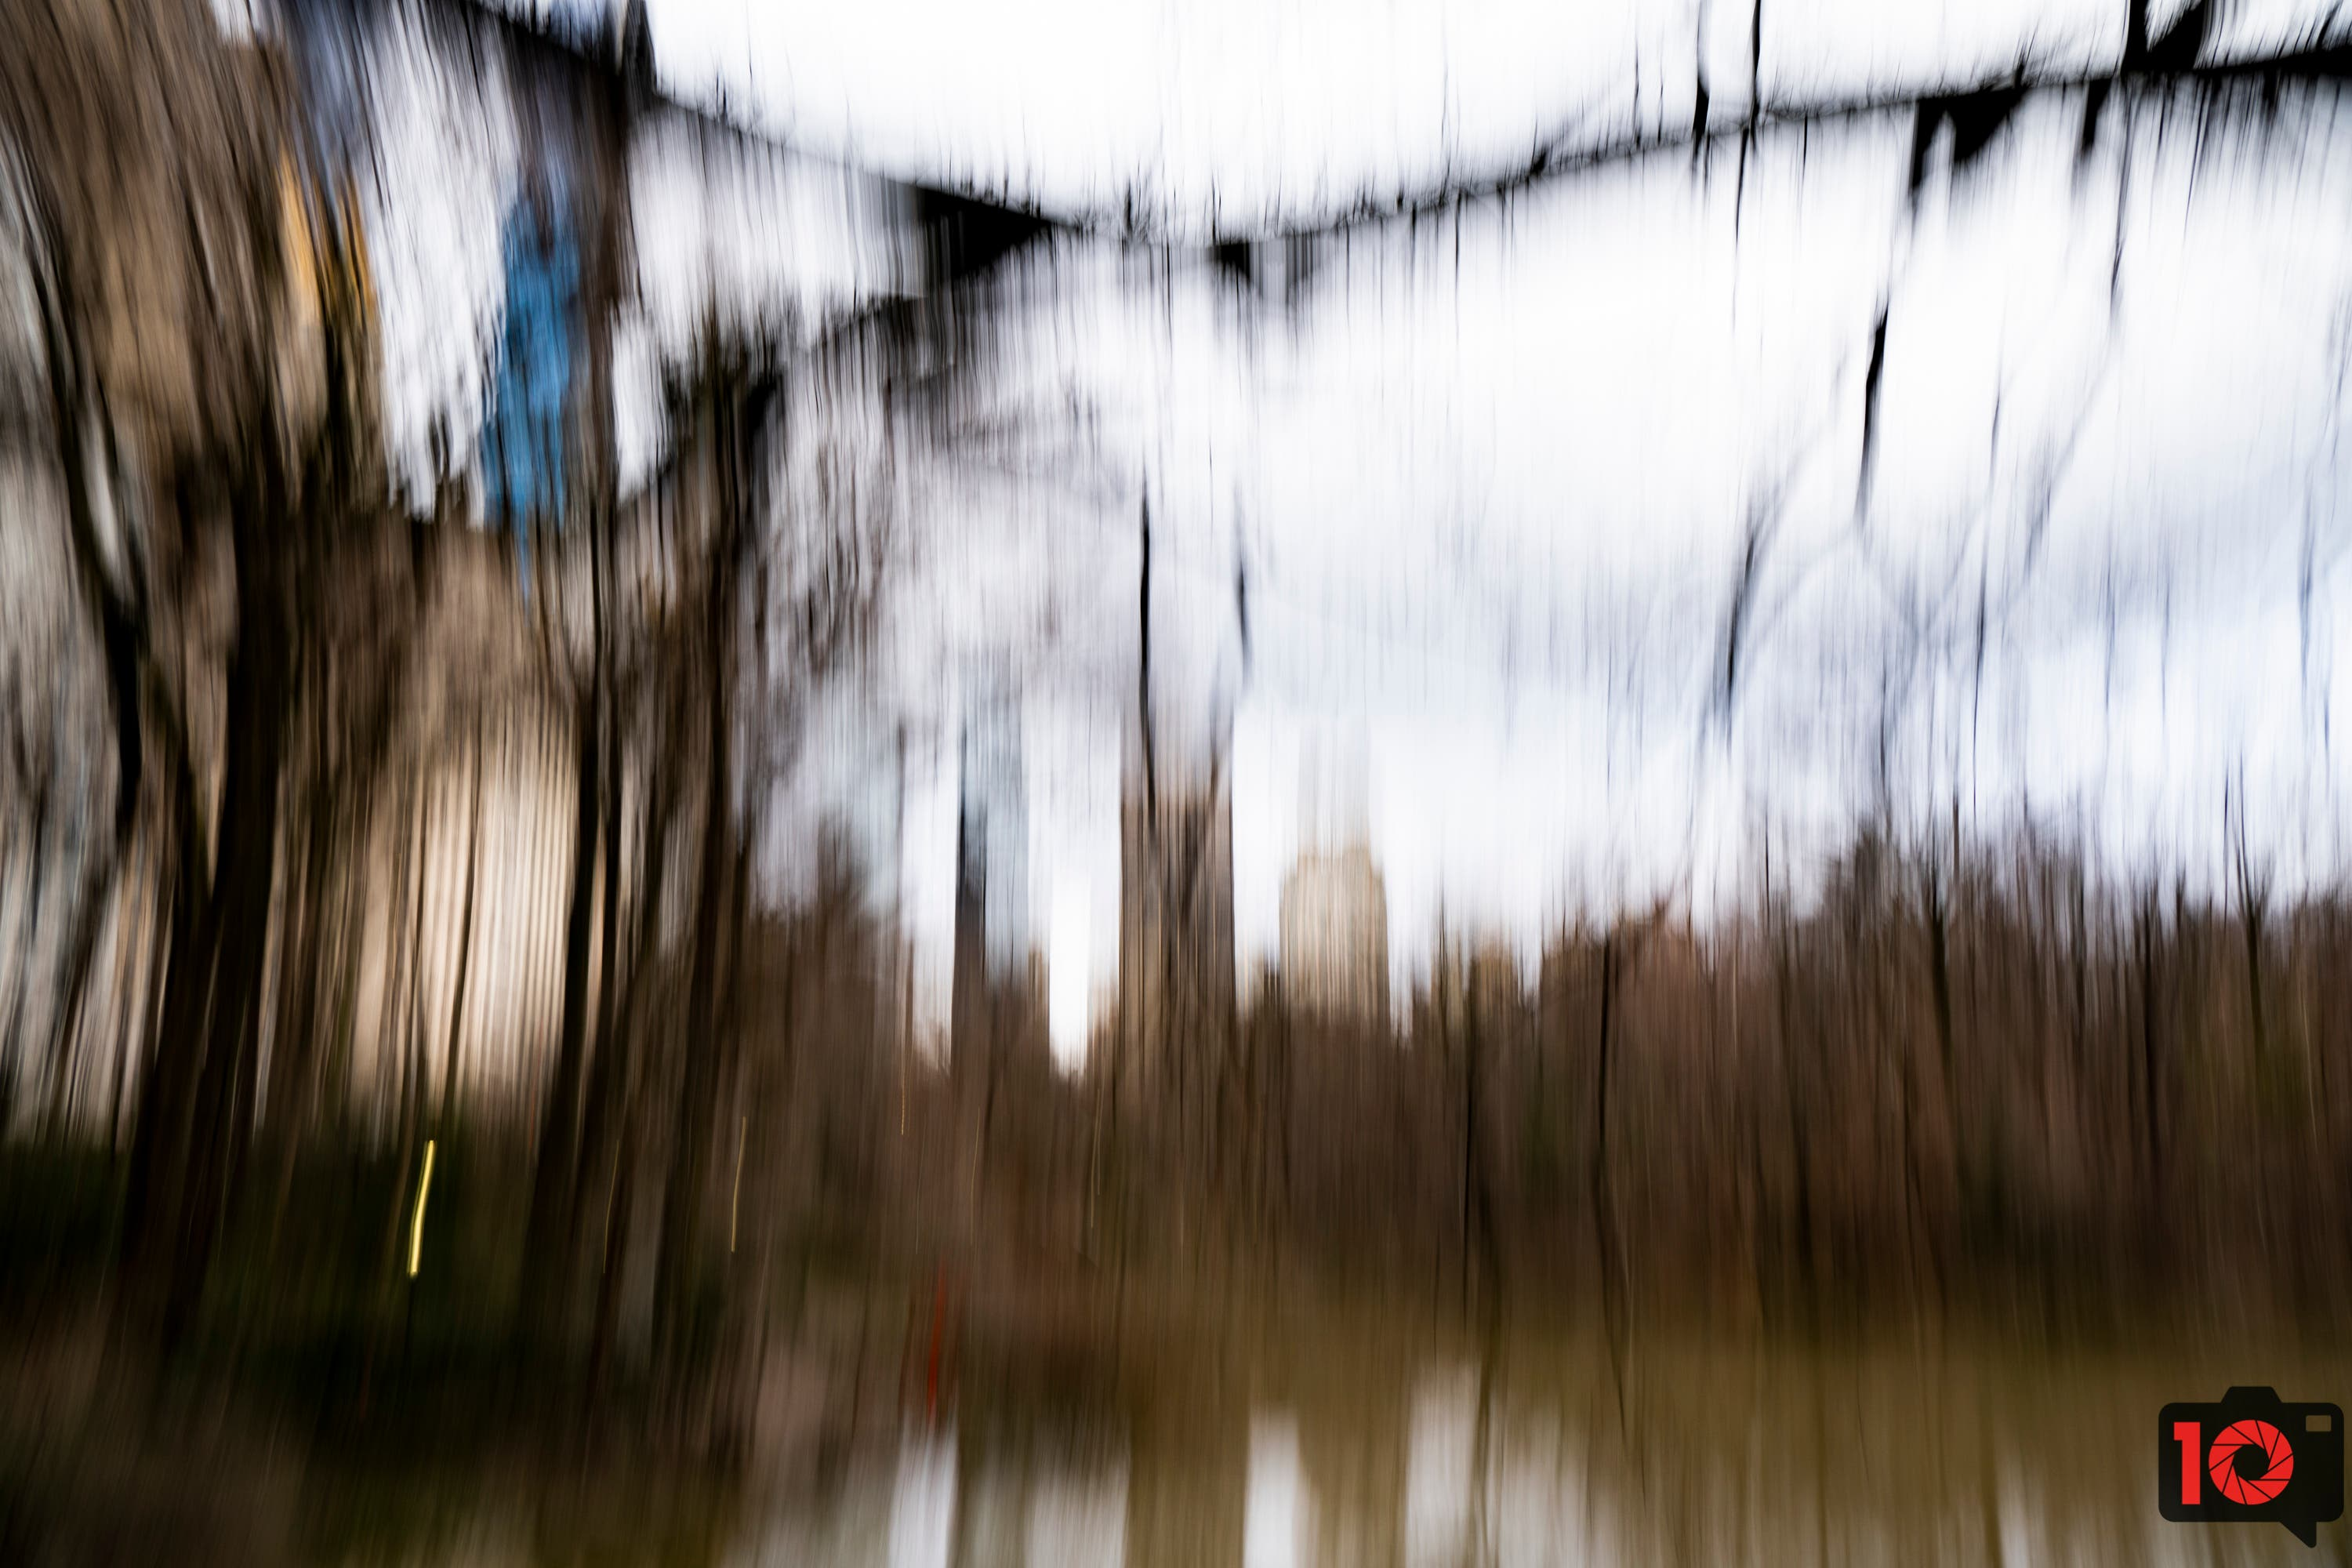 Intentional Camera Shake: How to Make Paintings Using Your Camera